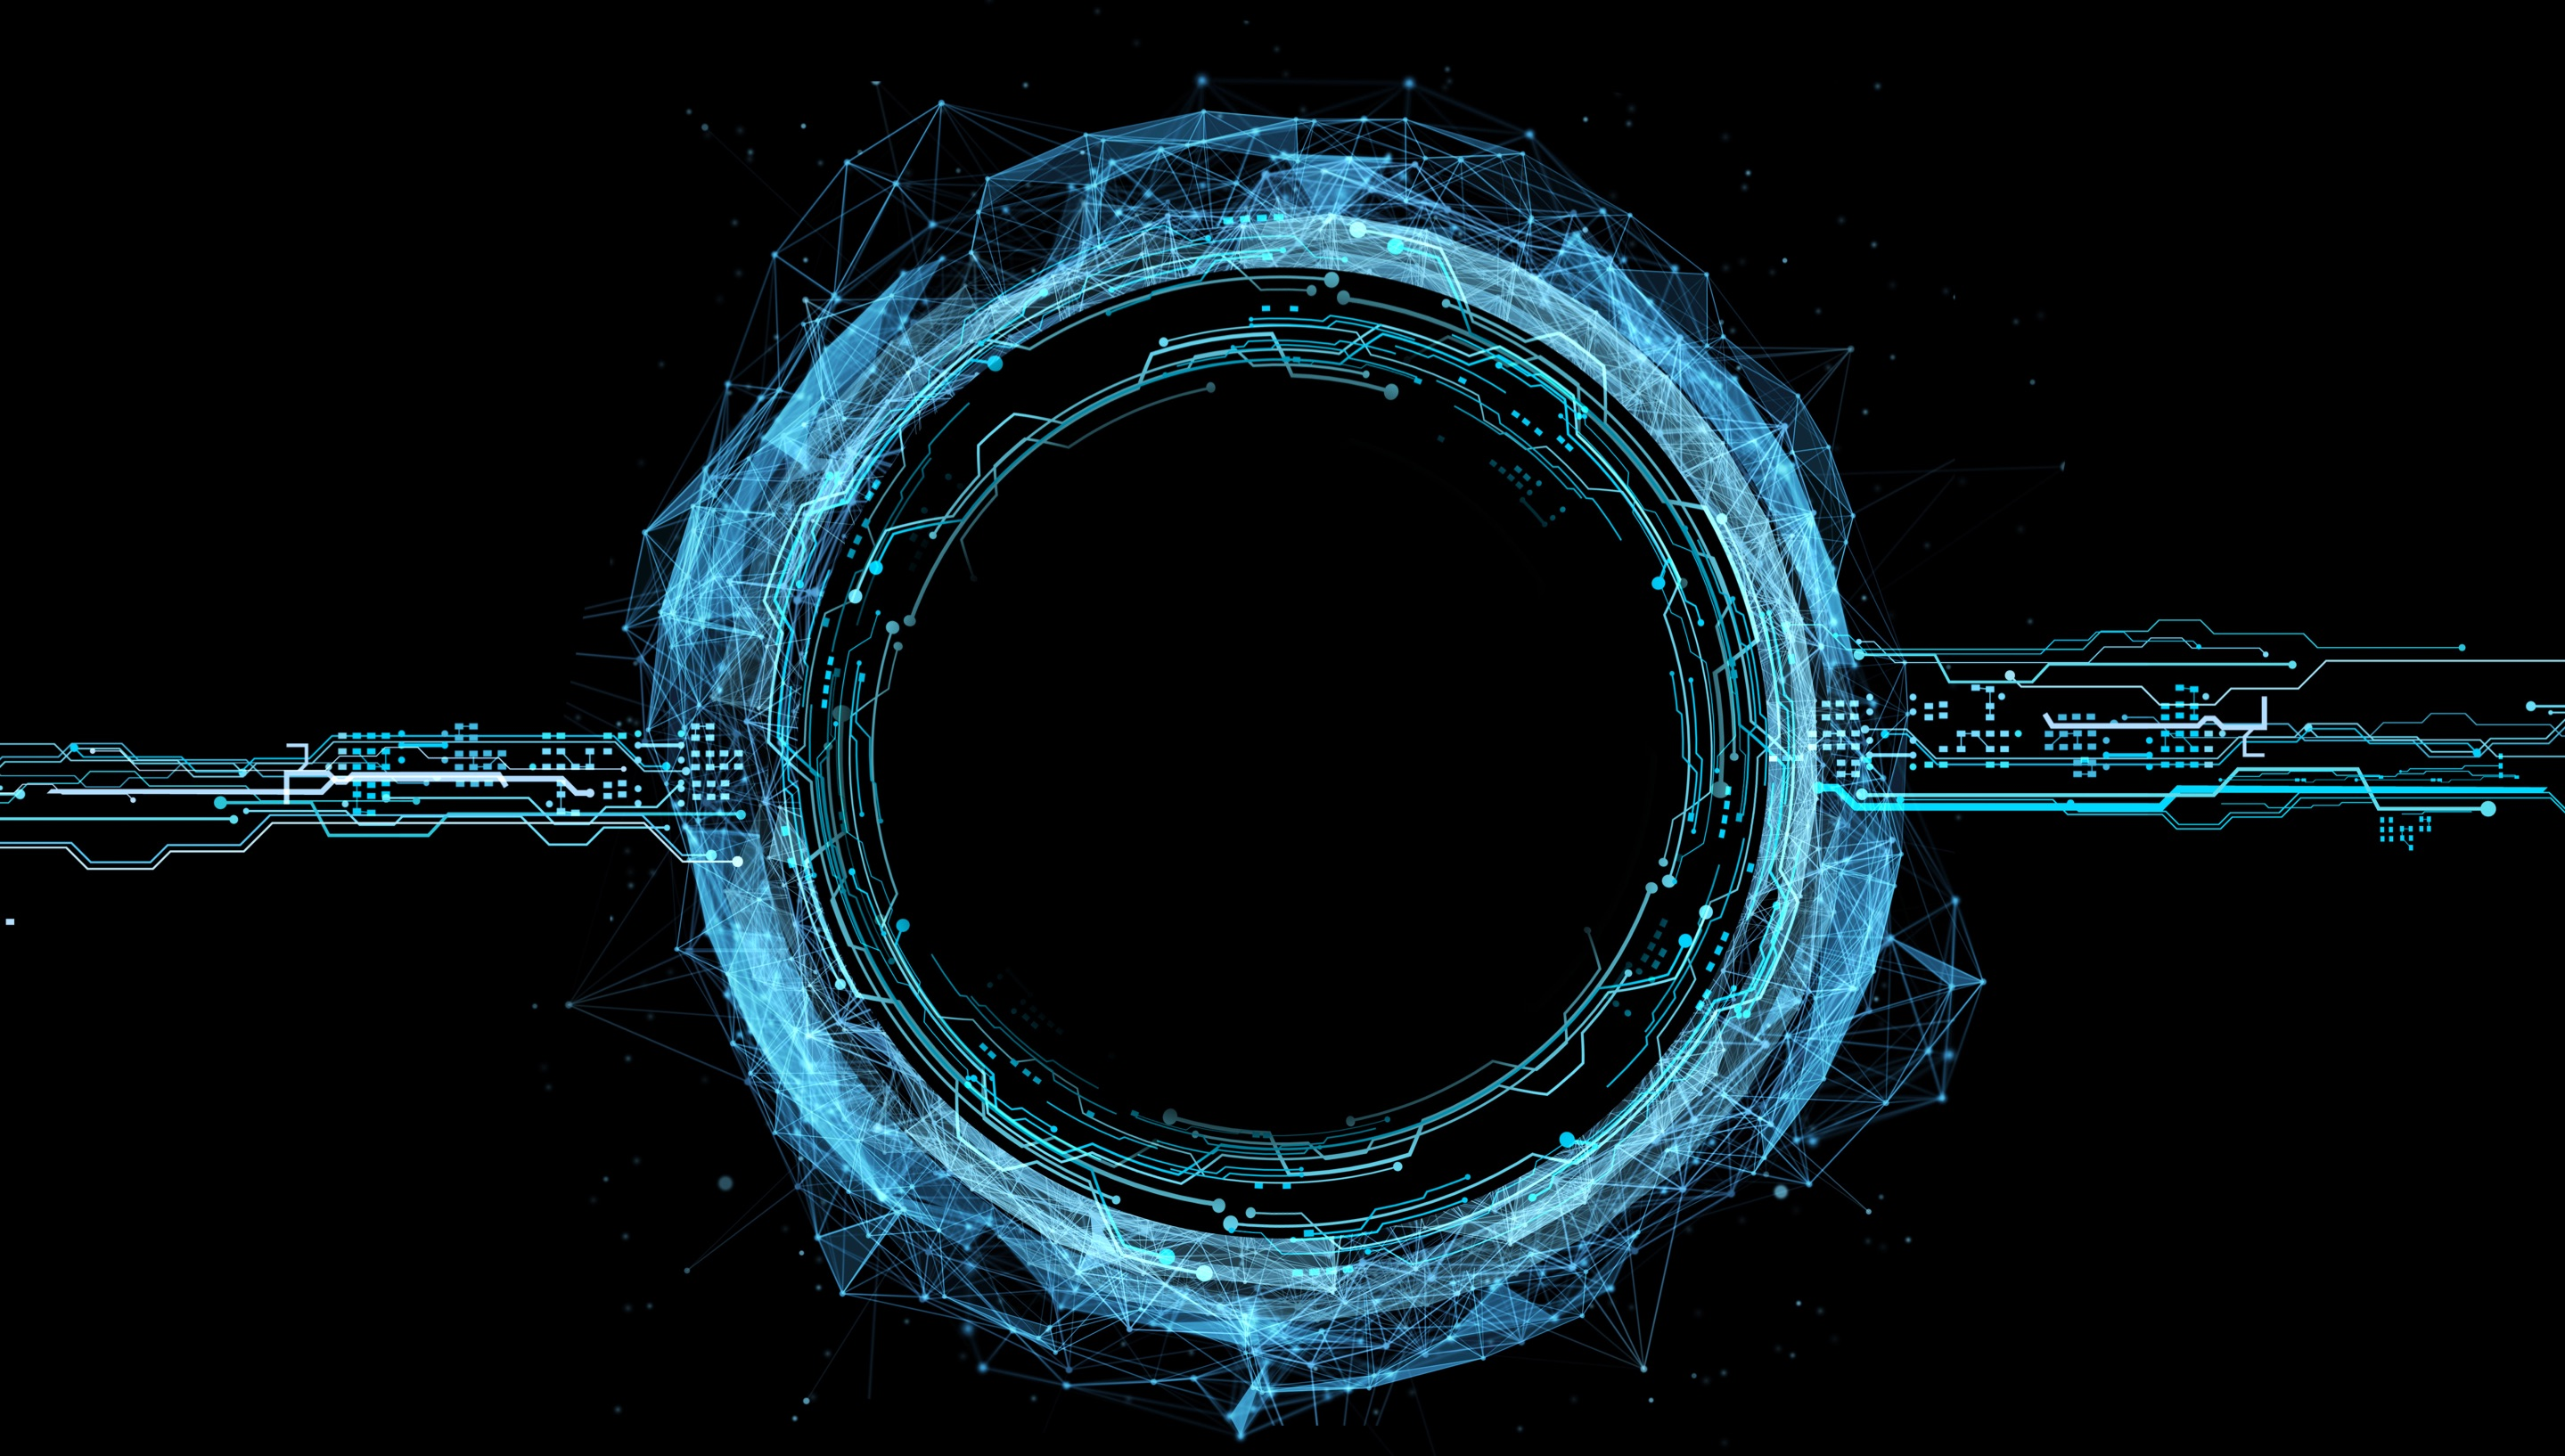 abstract circular image representing technology and engineering